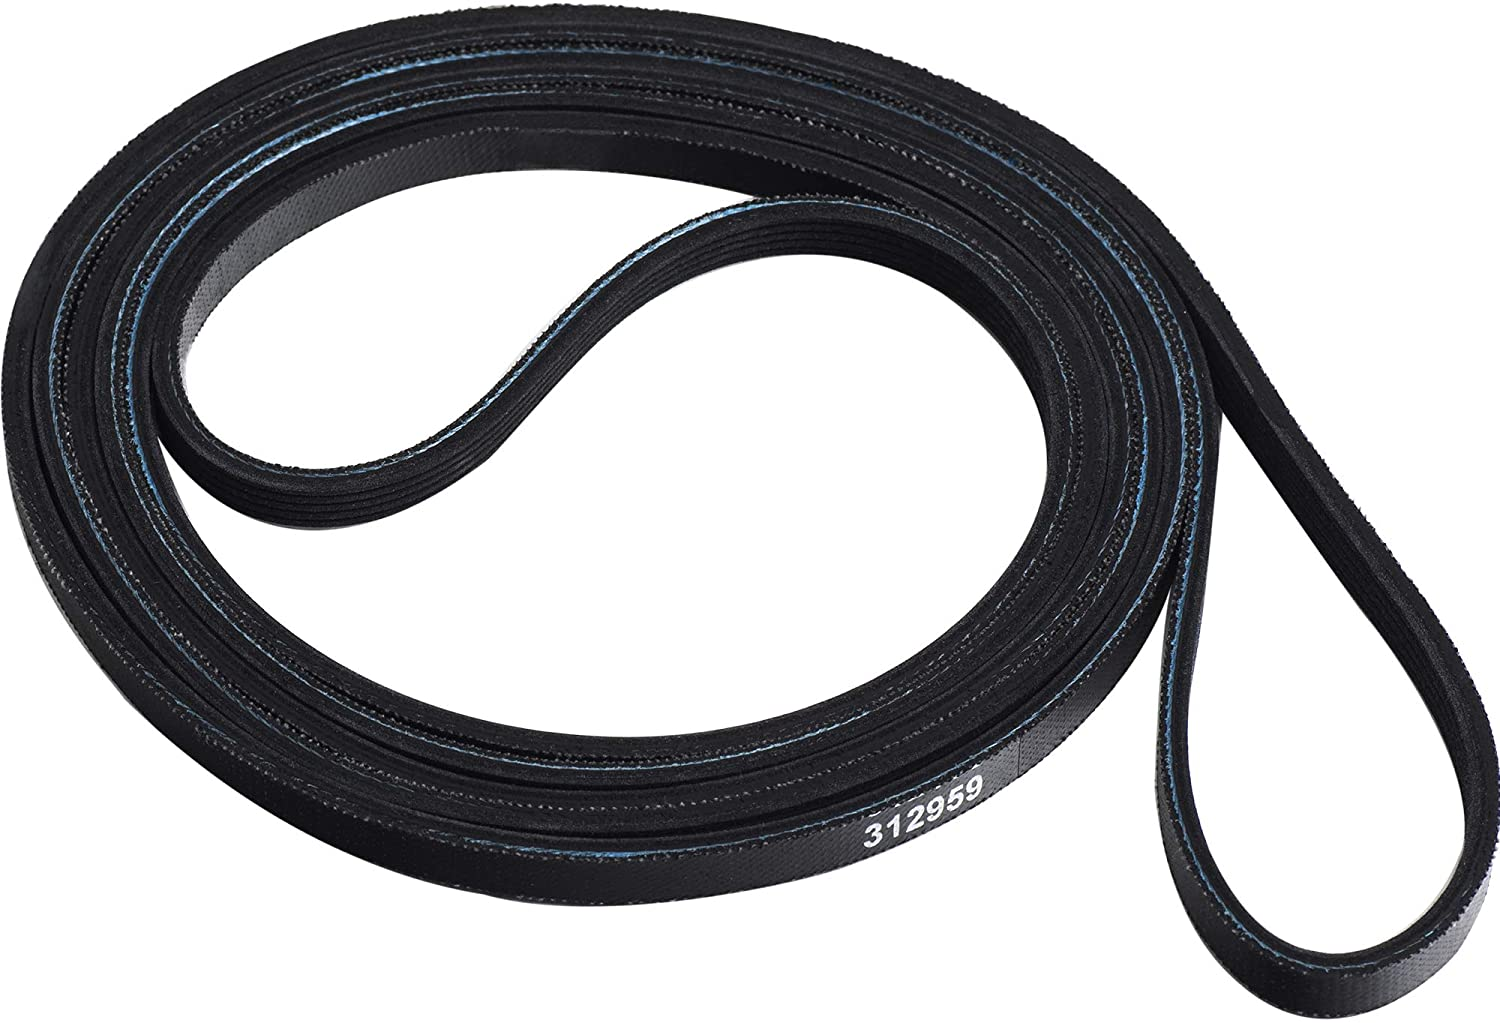 Ultra Durable 312959 (Y312959, WPY312959) Dryer Drum Belt Replacement Part by Blue Stars - Exact Fit for Whirlpool Maytag Jenn-Air International Dryers - Replaces 314774 WPY312959VP PS11757542